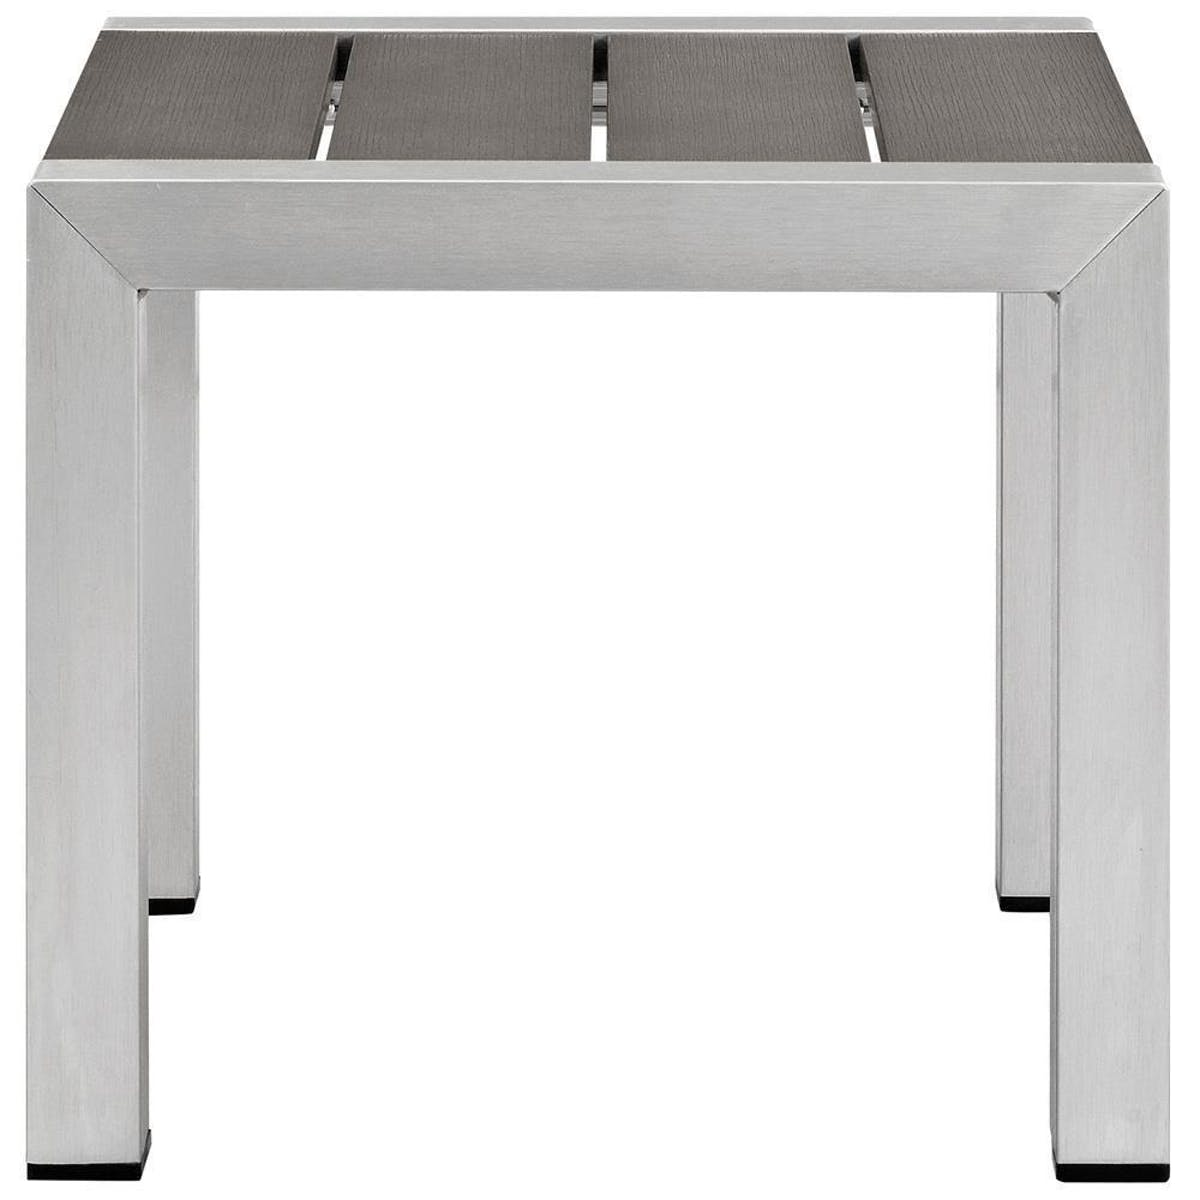 modway shore outdoor patio aluminum side table silver gray eei slv gry corner chests cabinets the pier furniture gold mirrored accent chrome desk legs short sofa hampton bay